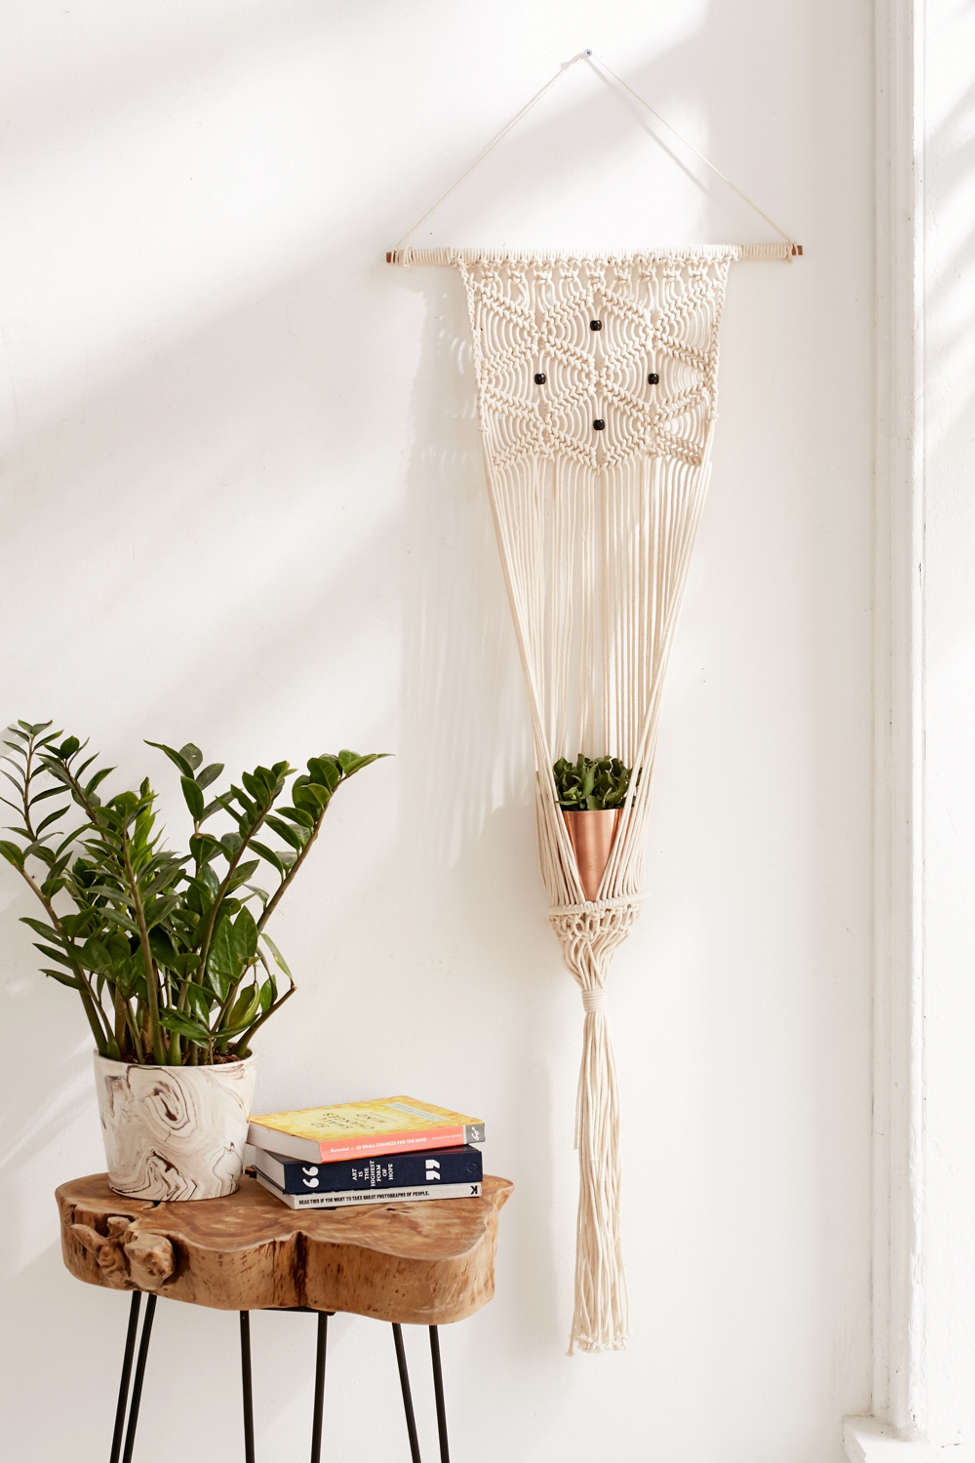 Hanging Wall Planter macrame hanging wall planter | urban outfitters